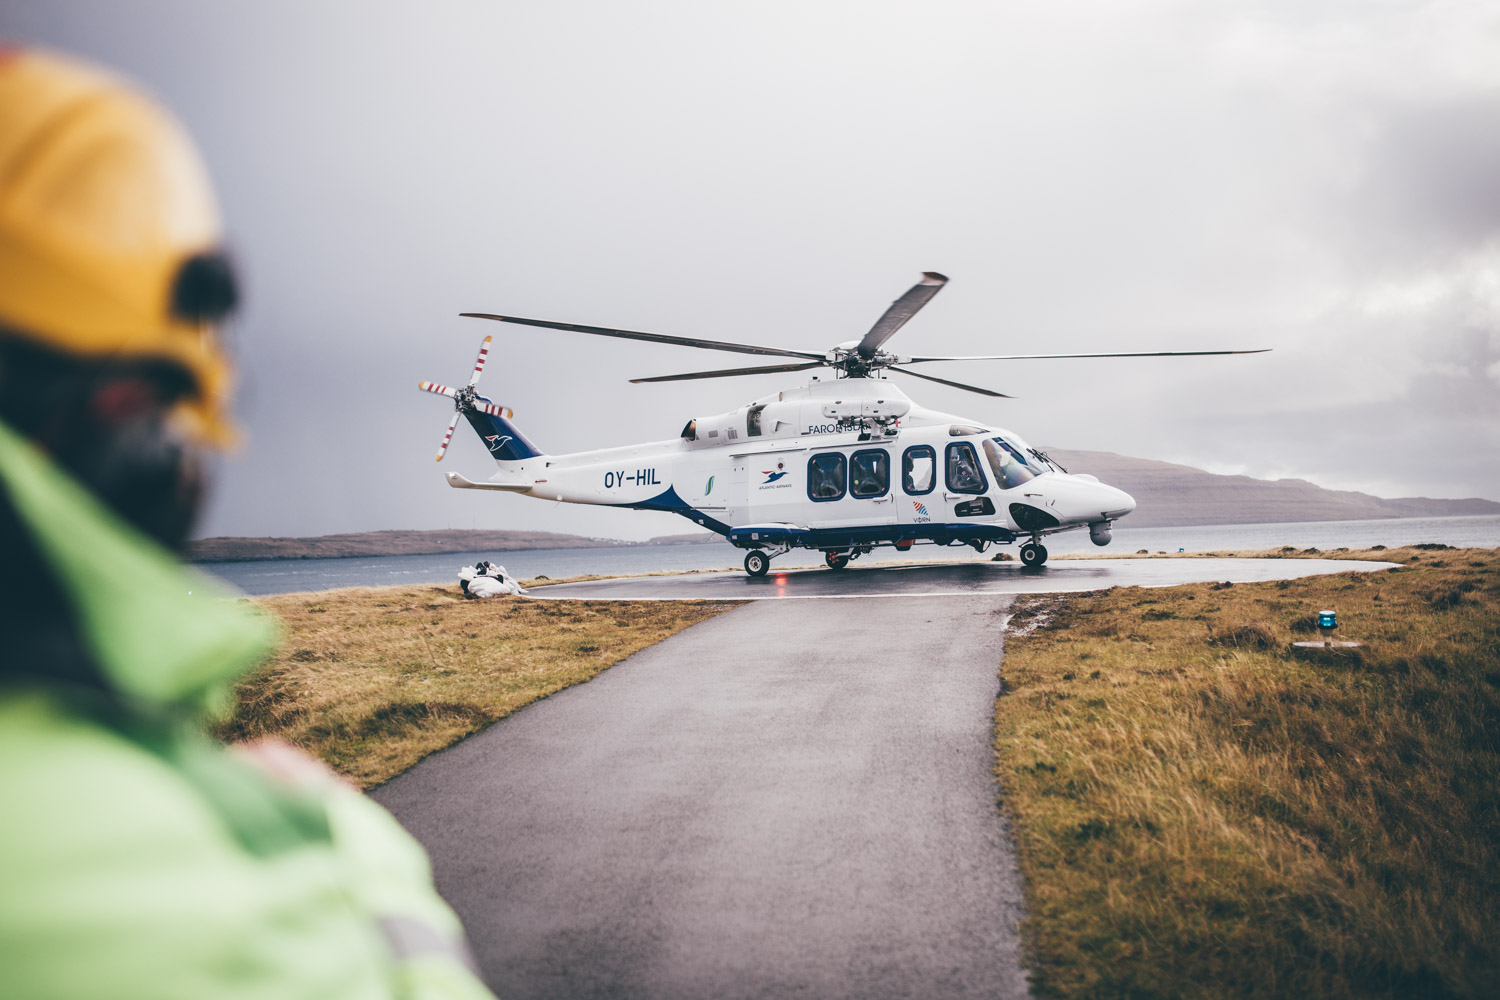 Faroe Islands Florian Besser Travel Färör Inseln Reise Foto Helicopter Helikopter Atlantic Airways